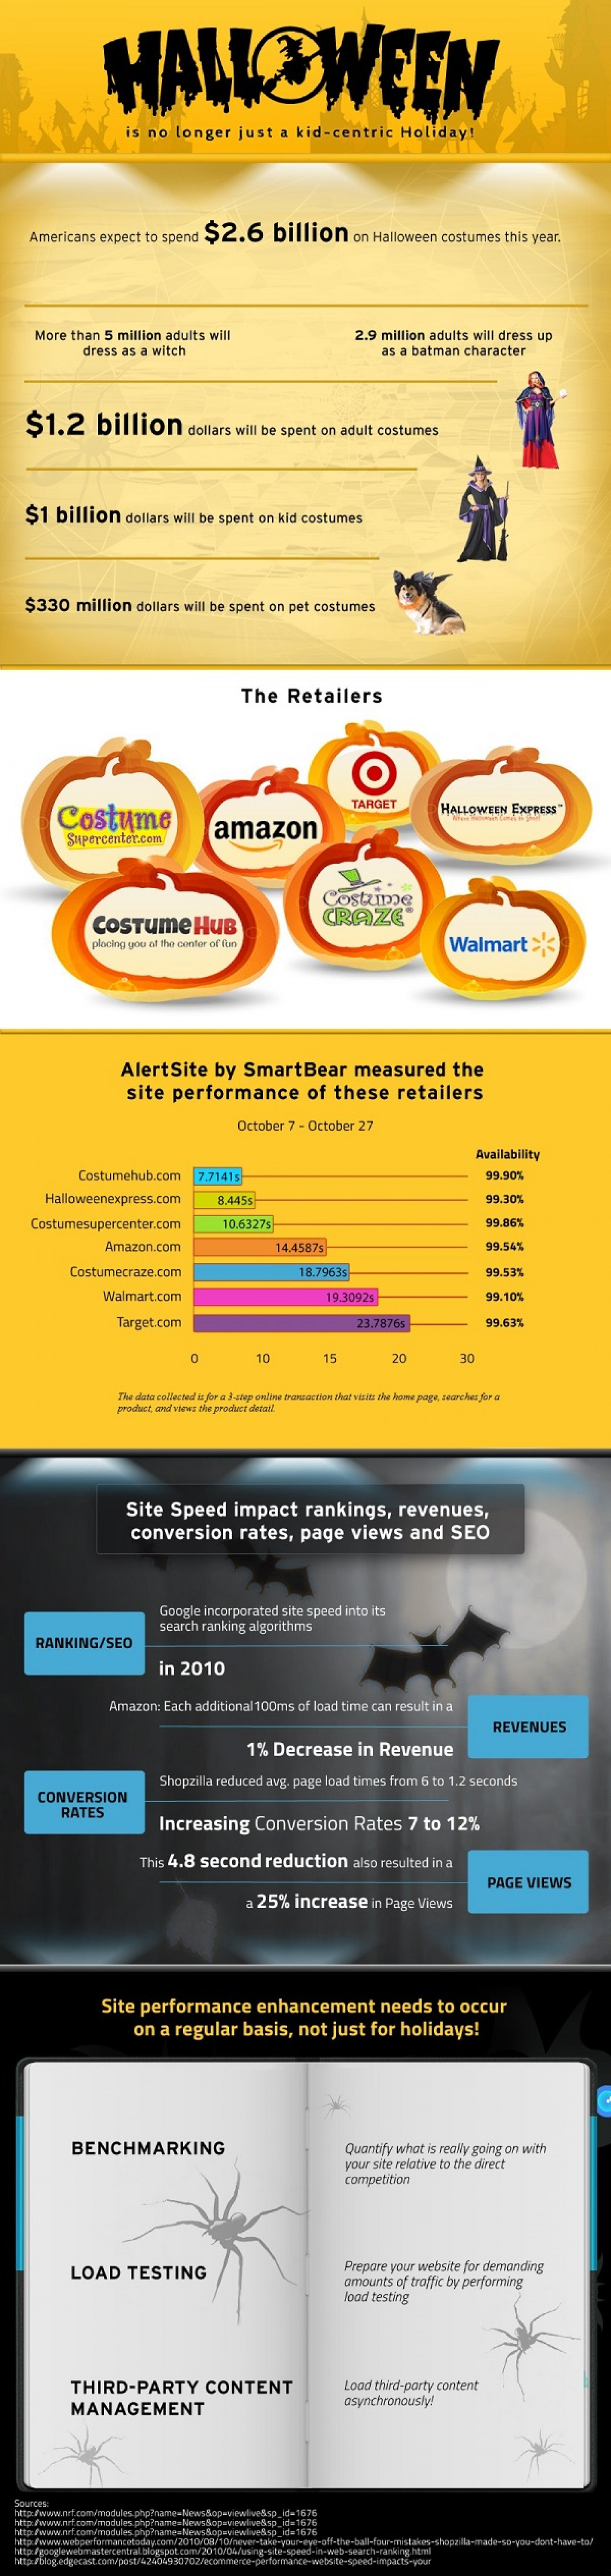 Halloween Web Traffic: Getting Down to the Bare Bones Infographic